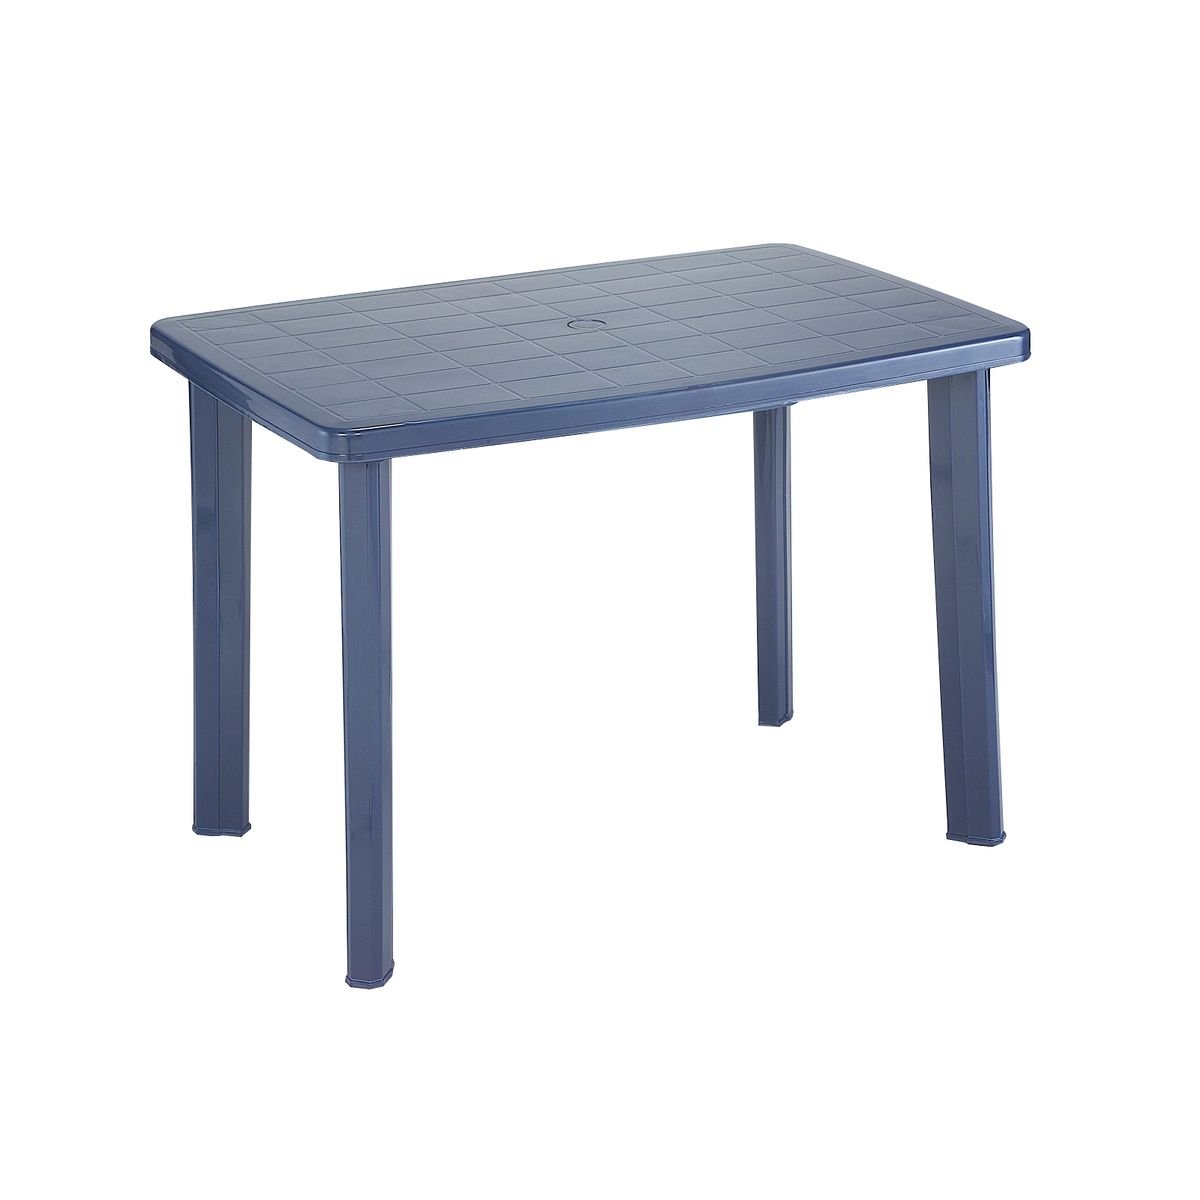 greemotion Plastic Garden Table - Dining Table - Balcony Table with Umbrella Hole - Terrace Table - Camping Table - Weatherproof & Stable, Blue 431120